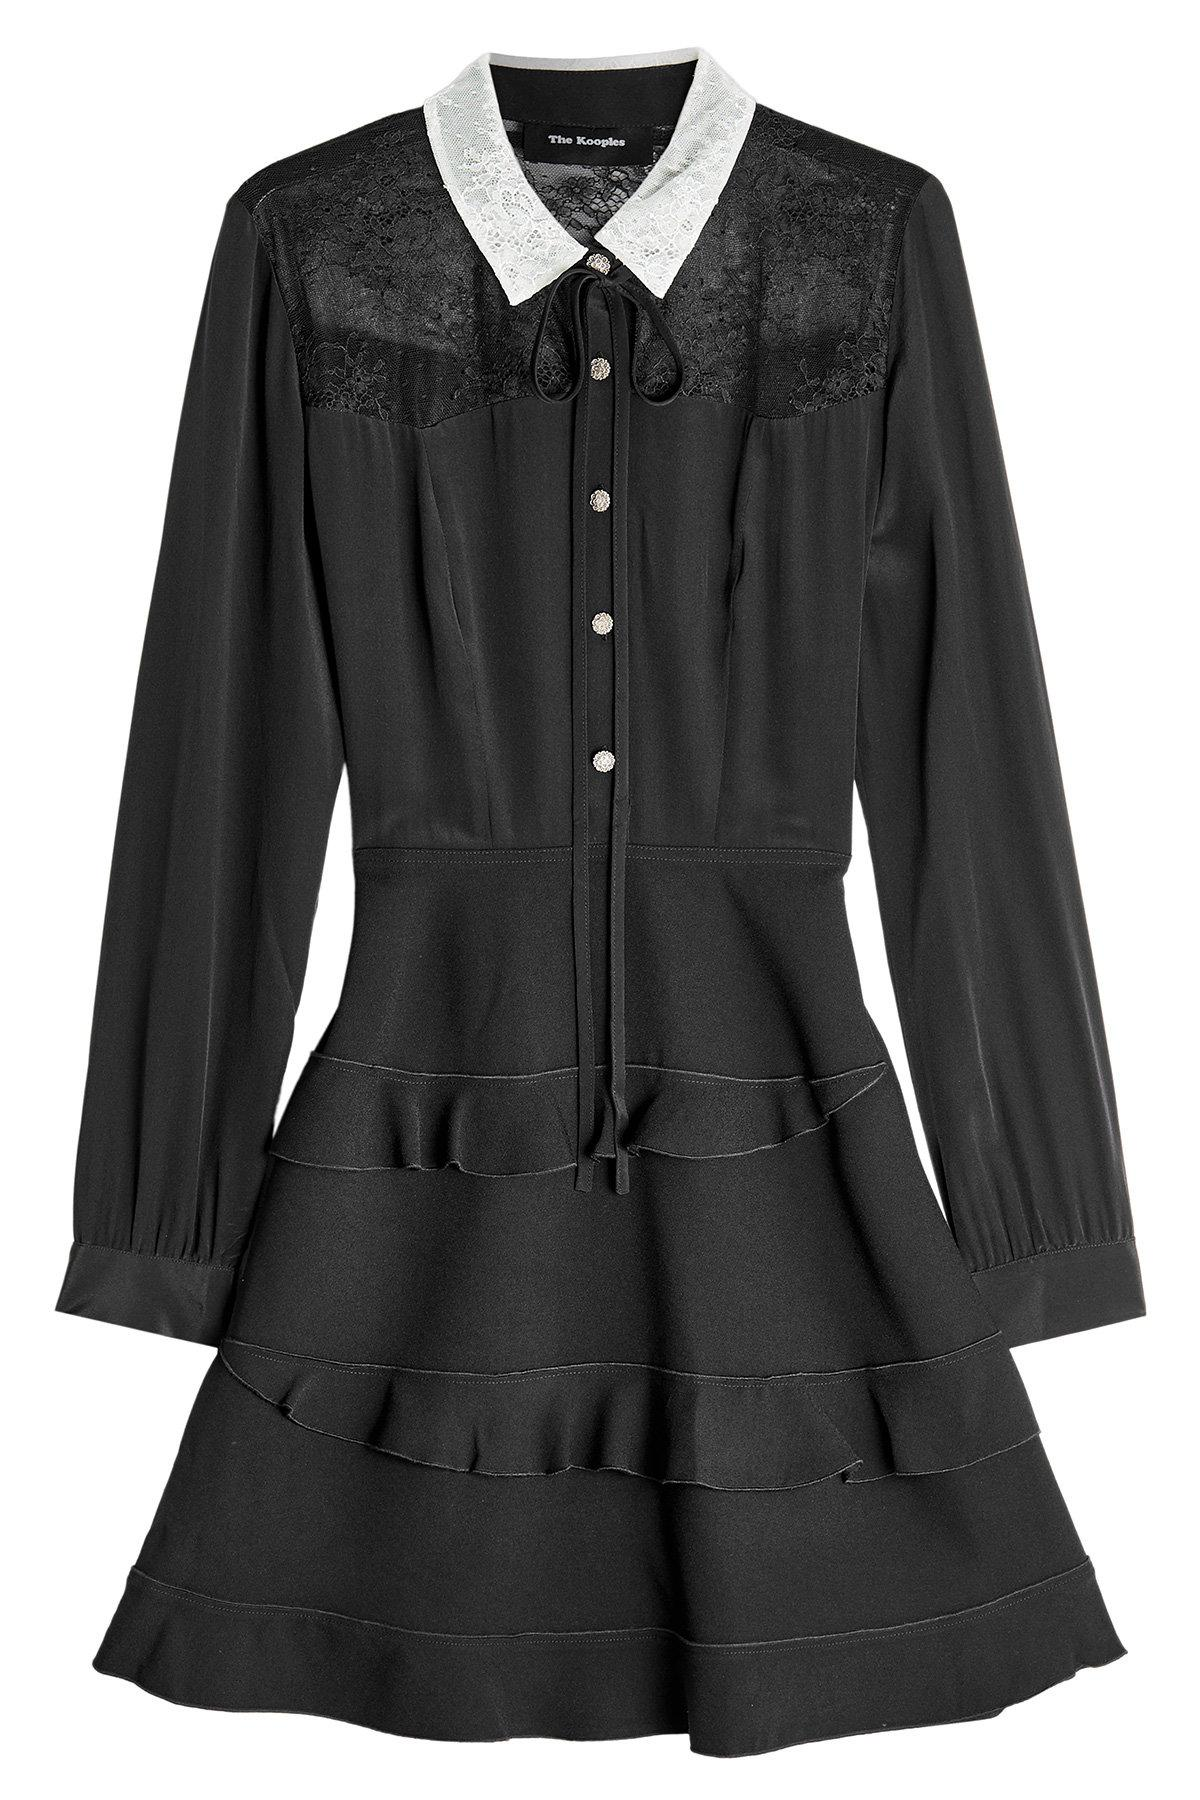 The Kooples Silk Dress With Lace And Ruffles In Black